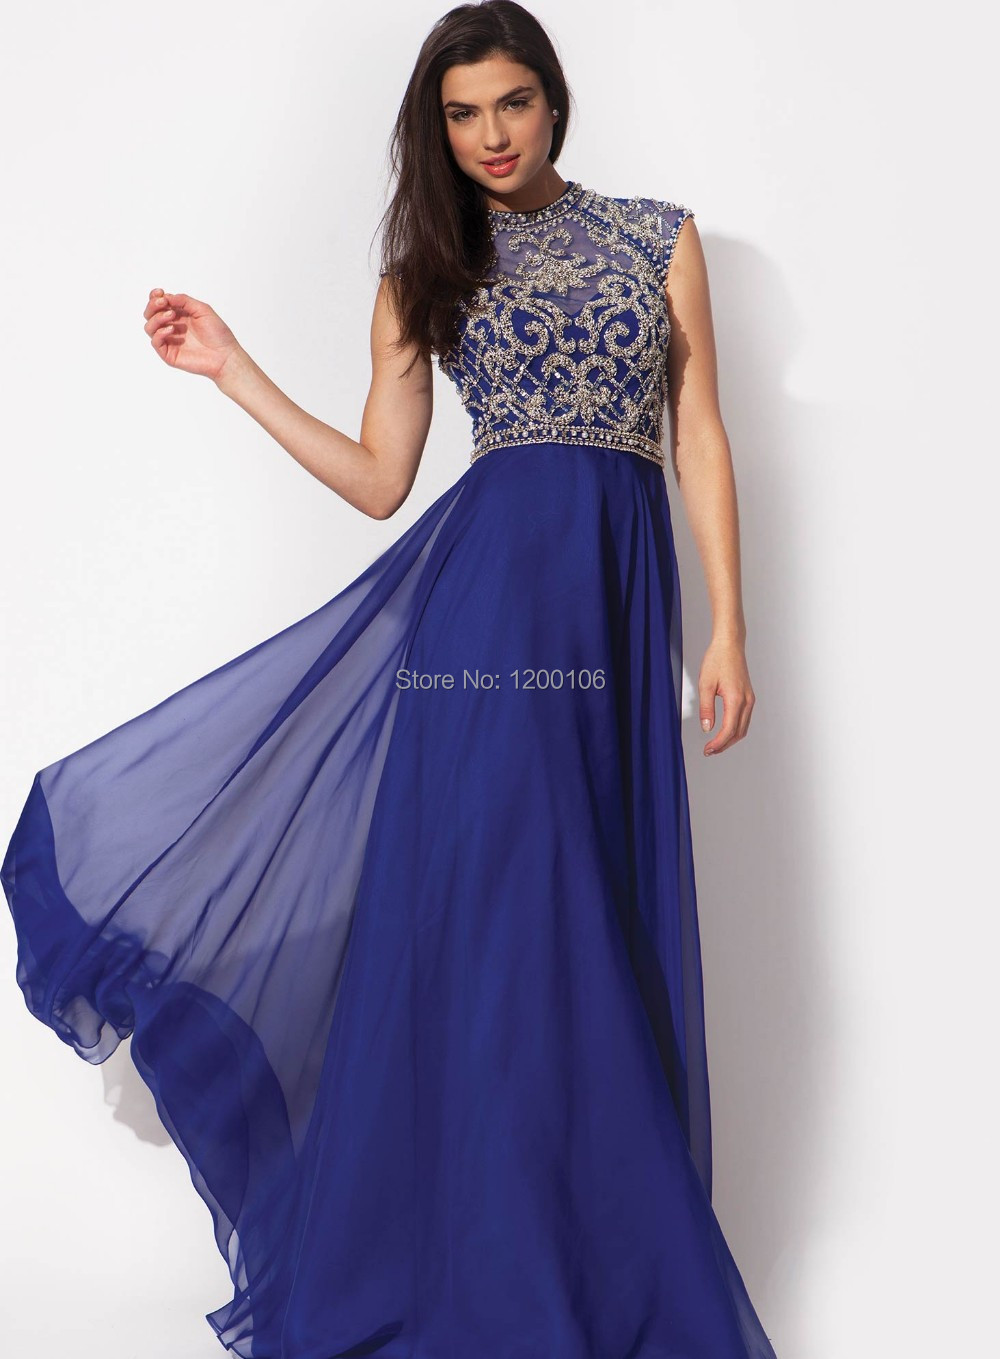 Royal blue and gold dress - Dress on sale